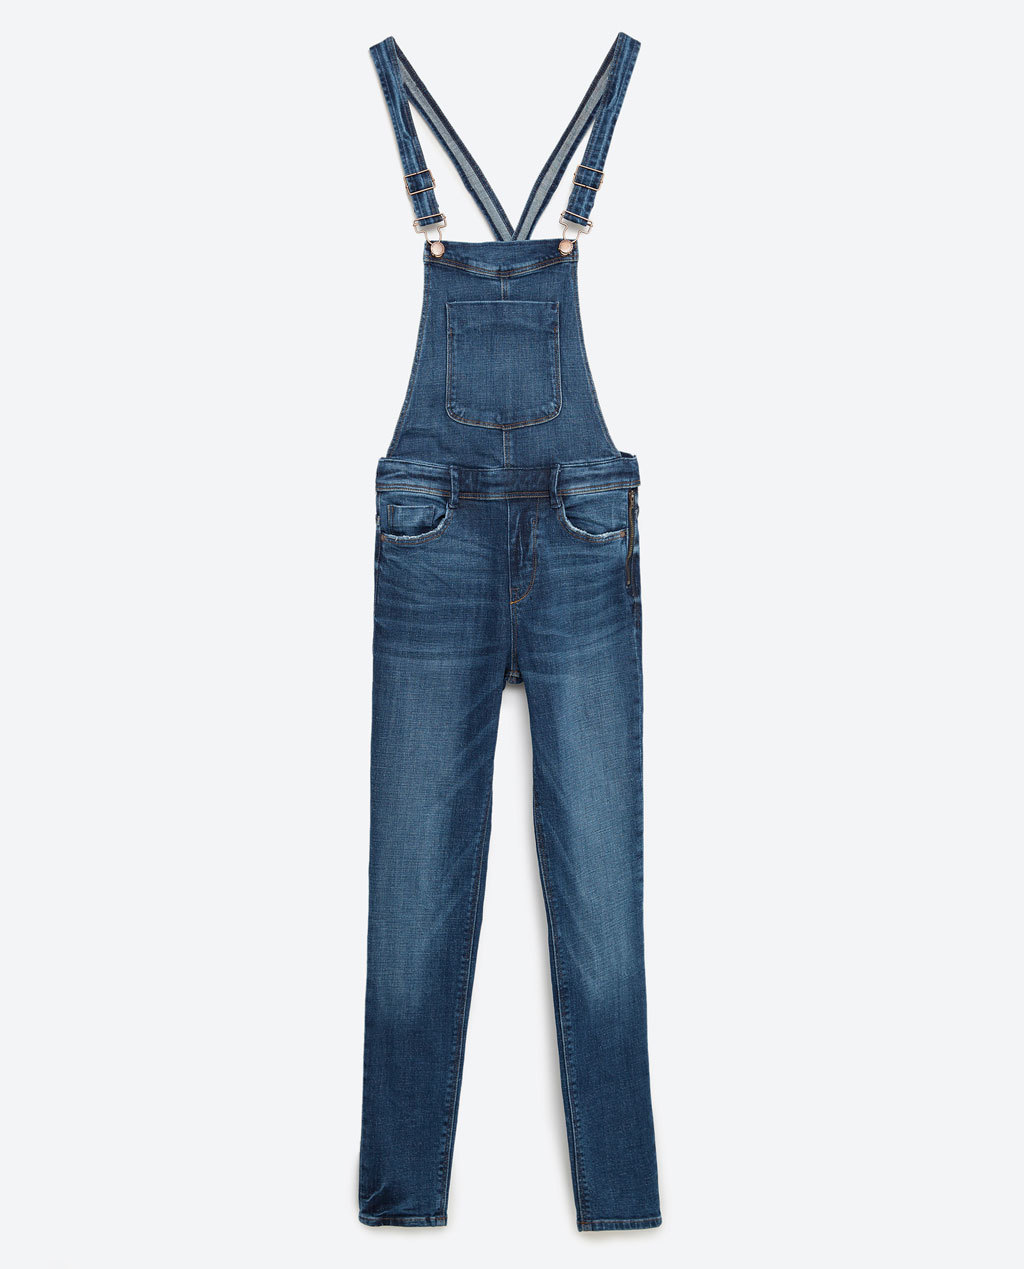 Skinny Denim Dungarees - length: standard; pattern: plain; sleeve style: sleeveless; predominant colour: denim; occasions: casual; fit: body skimming; fibres: cotton - stretch; sleeve length: sleeveless; texture group: denim; style: dungarees; neckline: low square neck; pattern type: fabric; season: s/s 2016; wardrobe: highlight